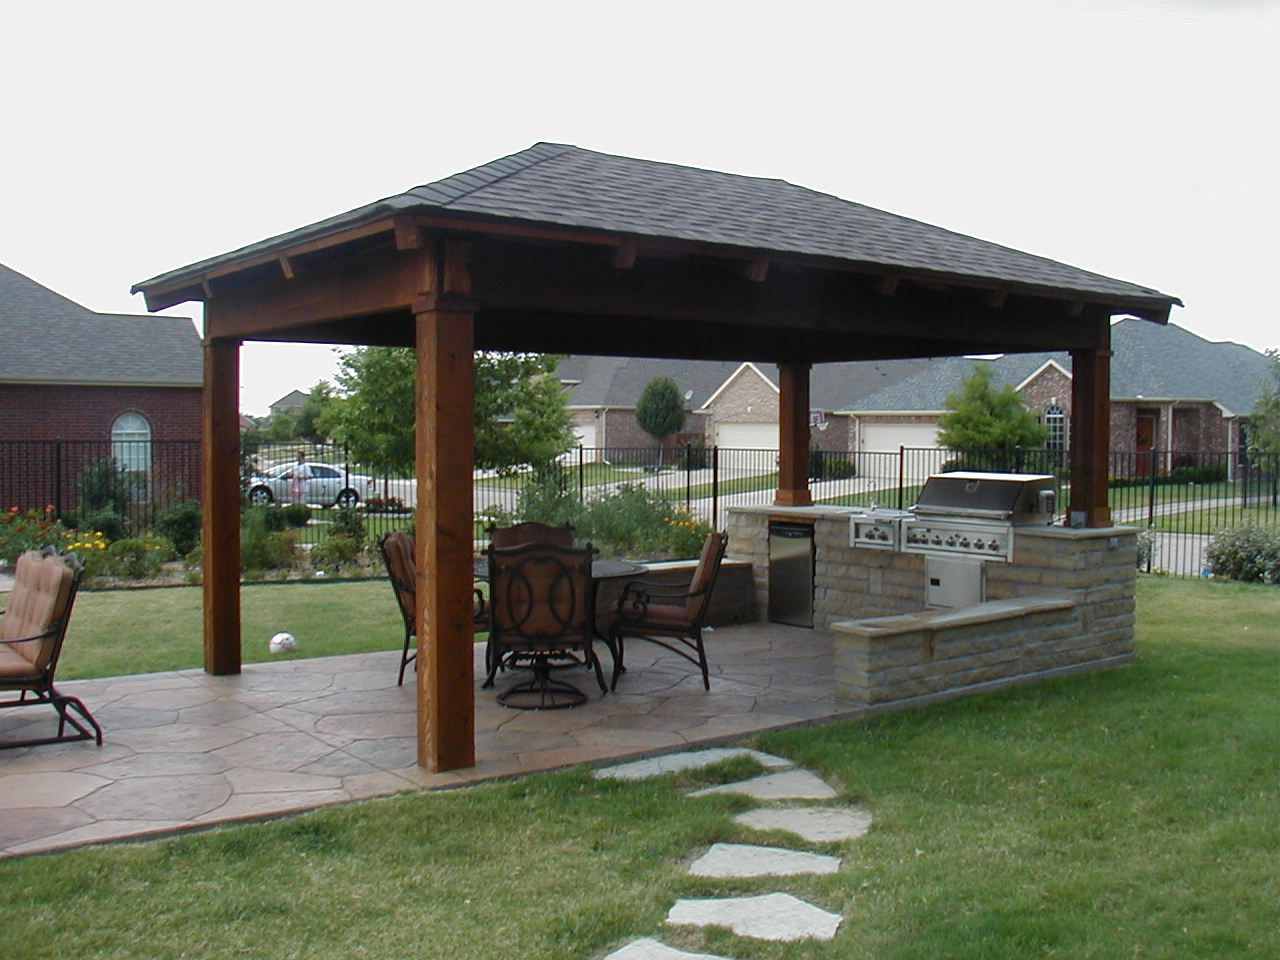 Painting of Outdoor Pavilion Plans That Offer a Pleasant Relaxing Time at  Your Backyard - Painting Of Outdoor Pavilion Plans That Offer A Pleasant Relaxing